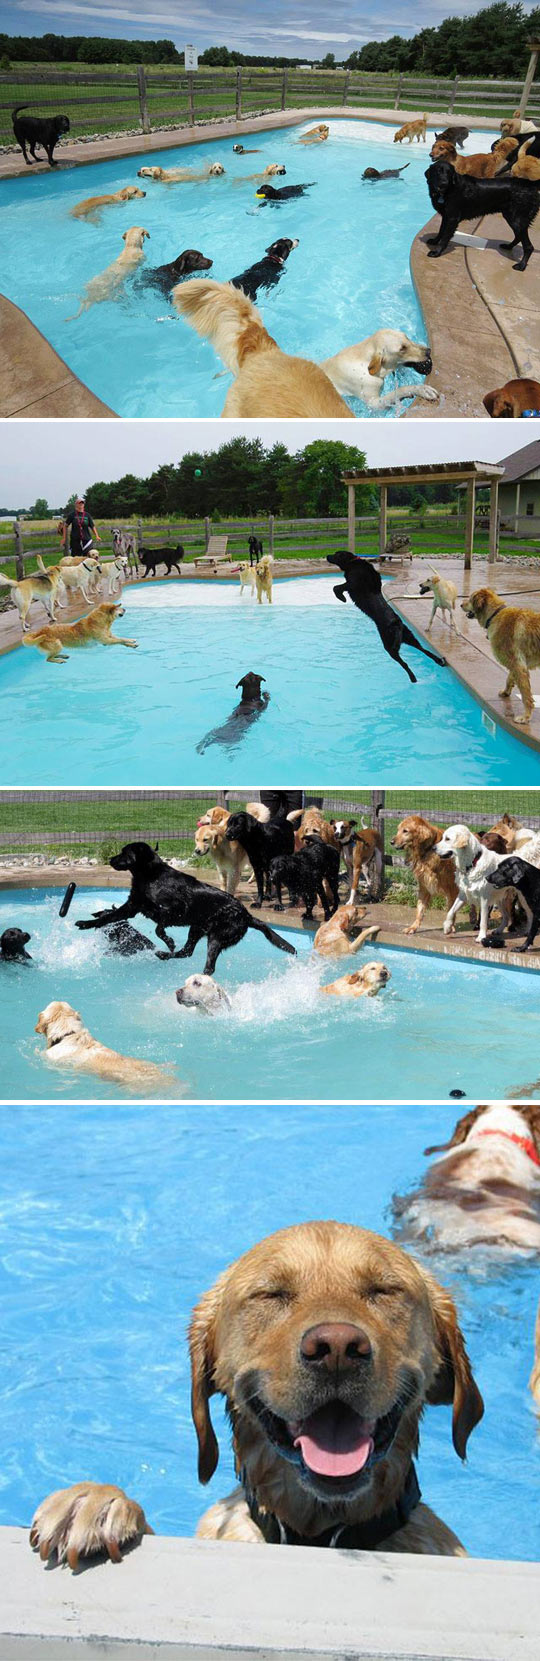 Pool Party For Dogs